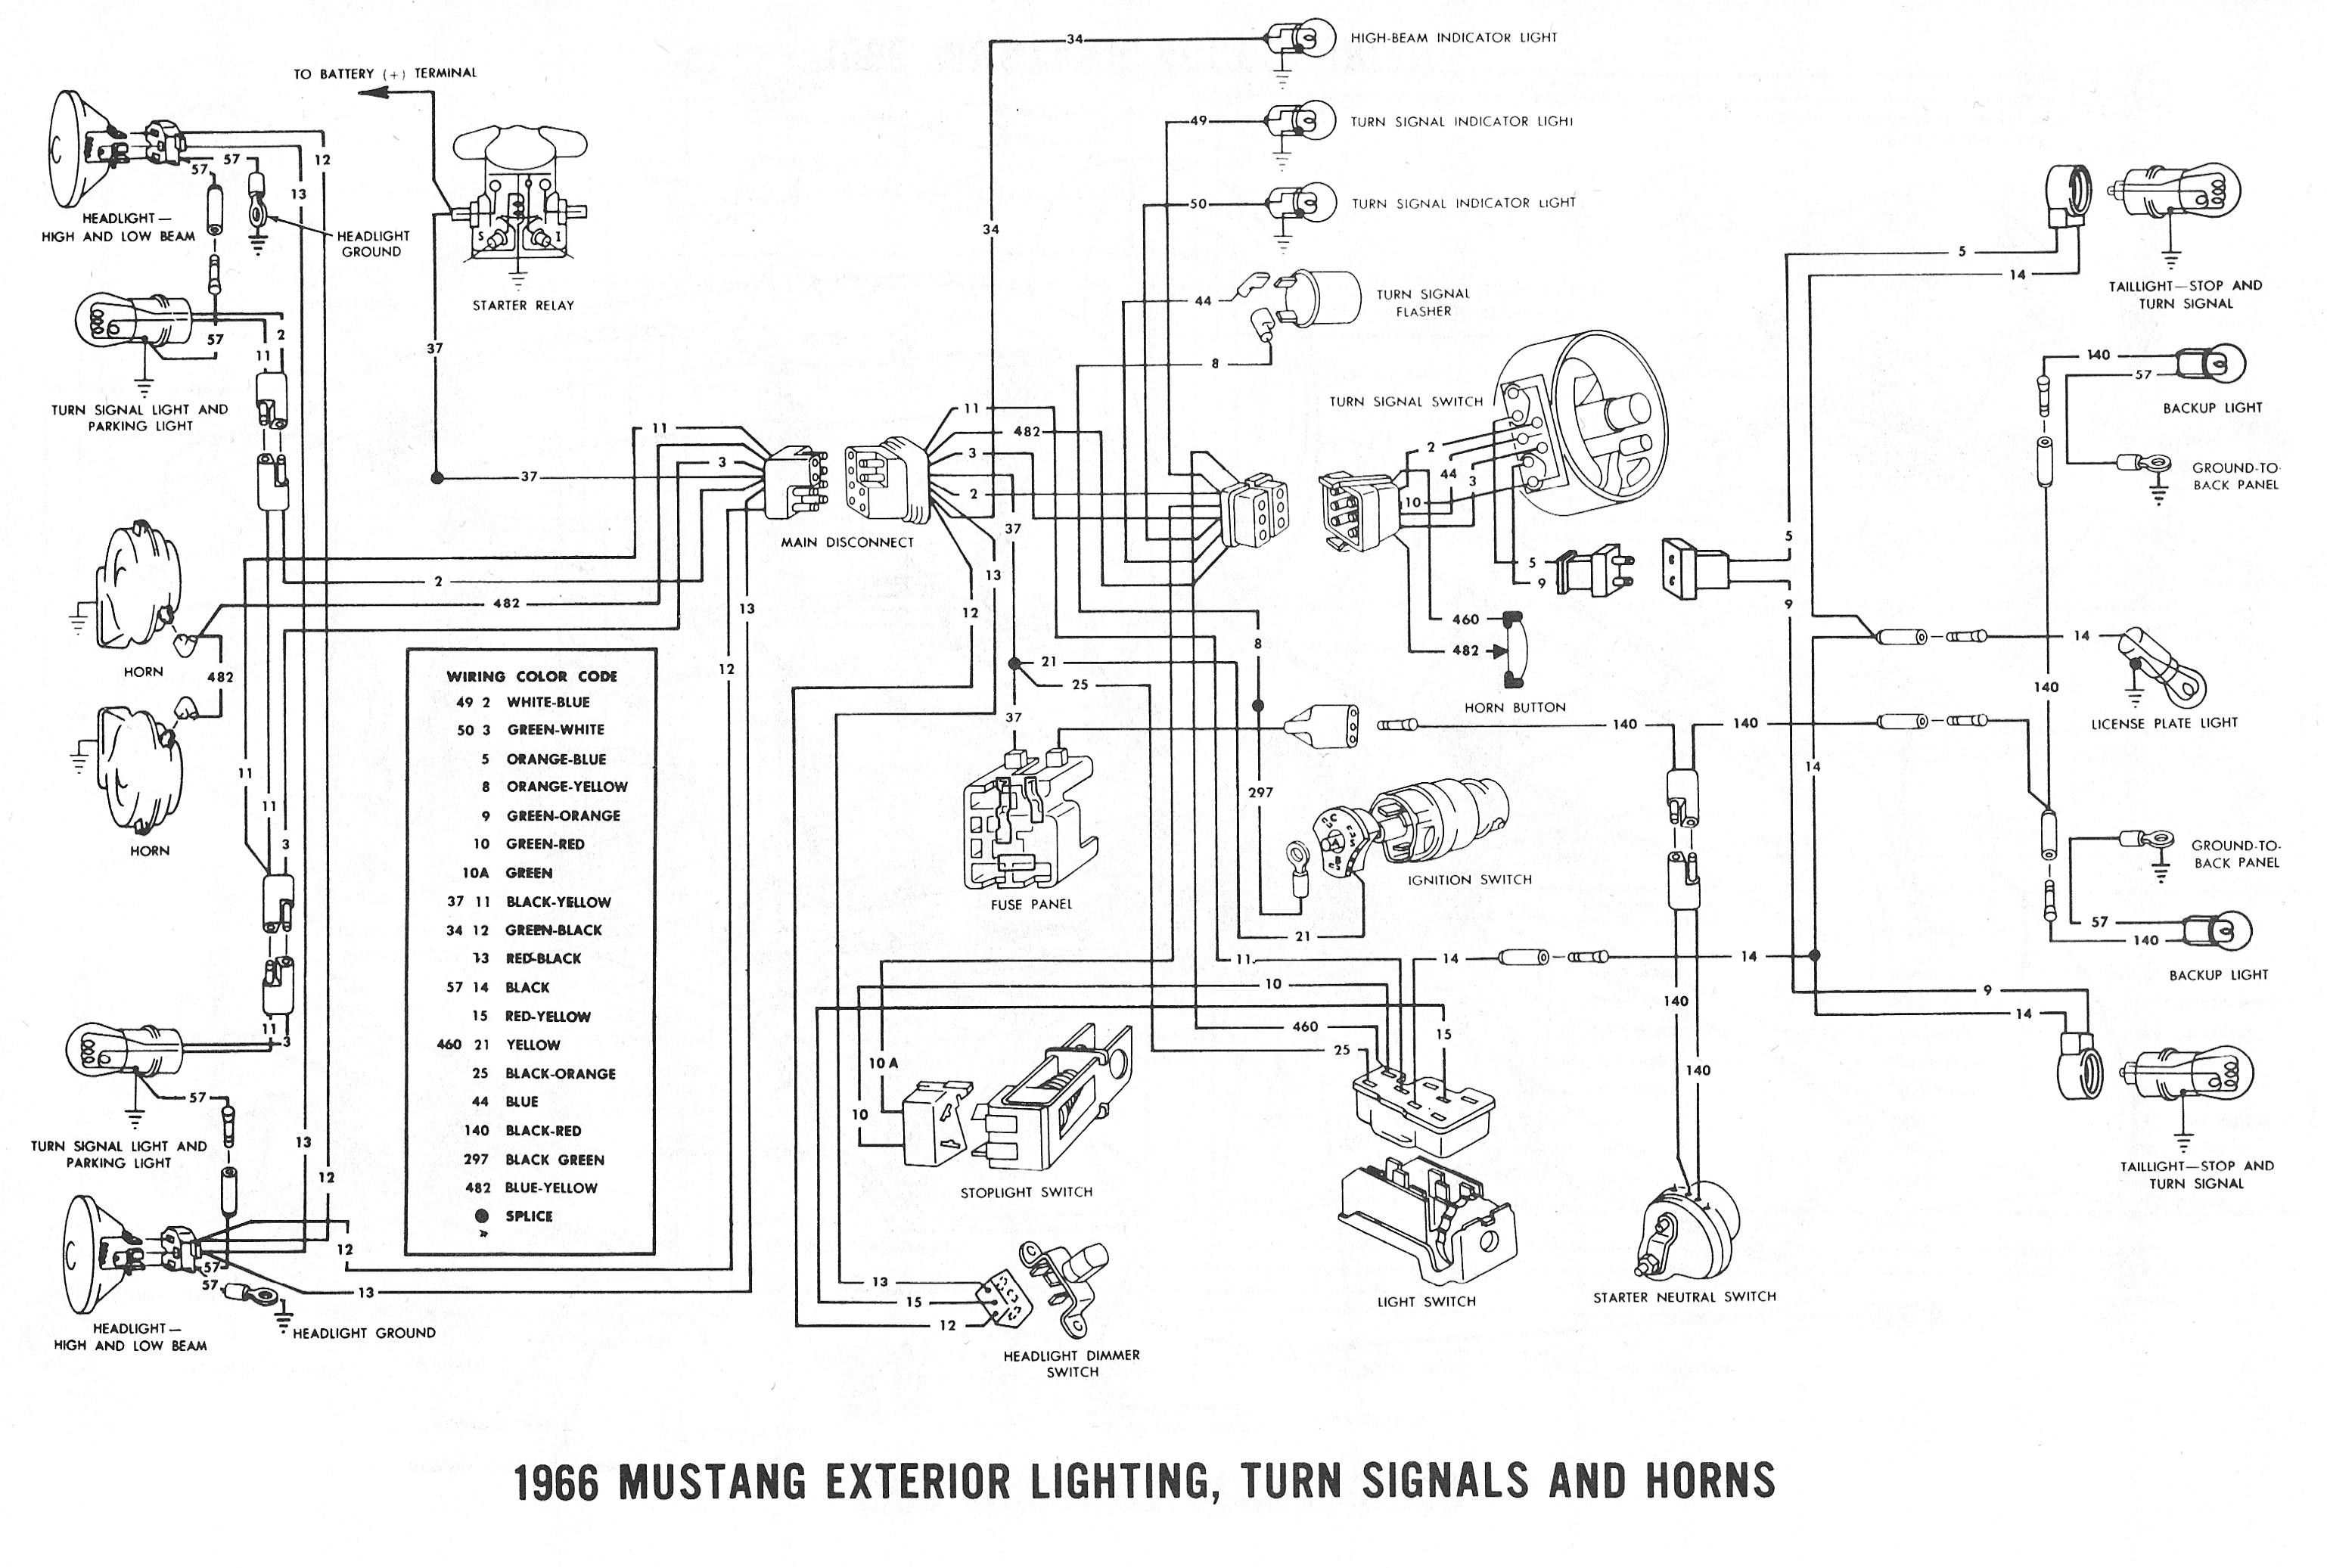 1965 Ford F100 Turn Signal Wiring Diagram - Circuit Connection Diagram •